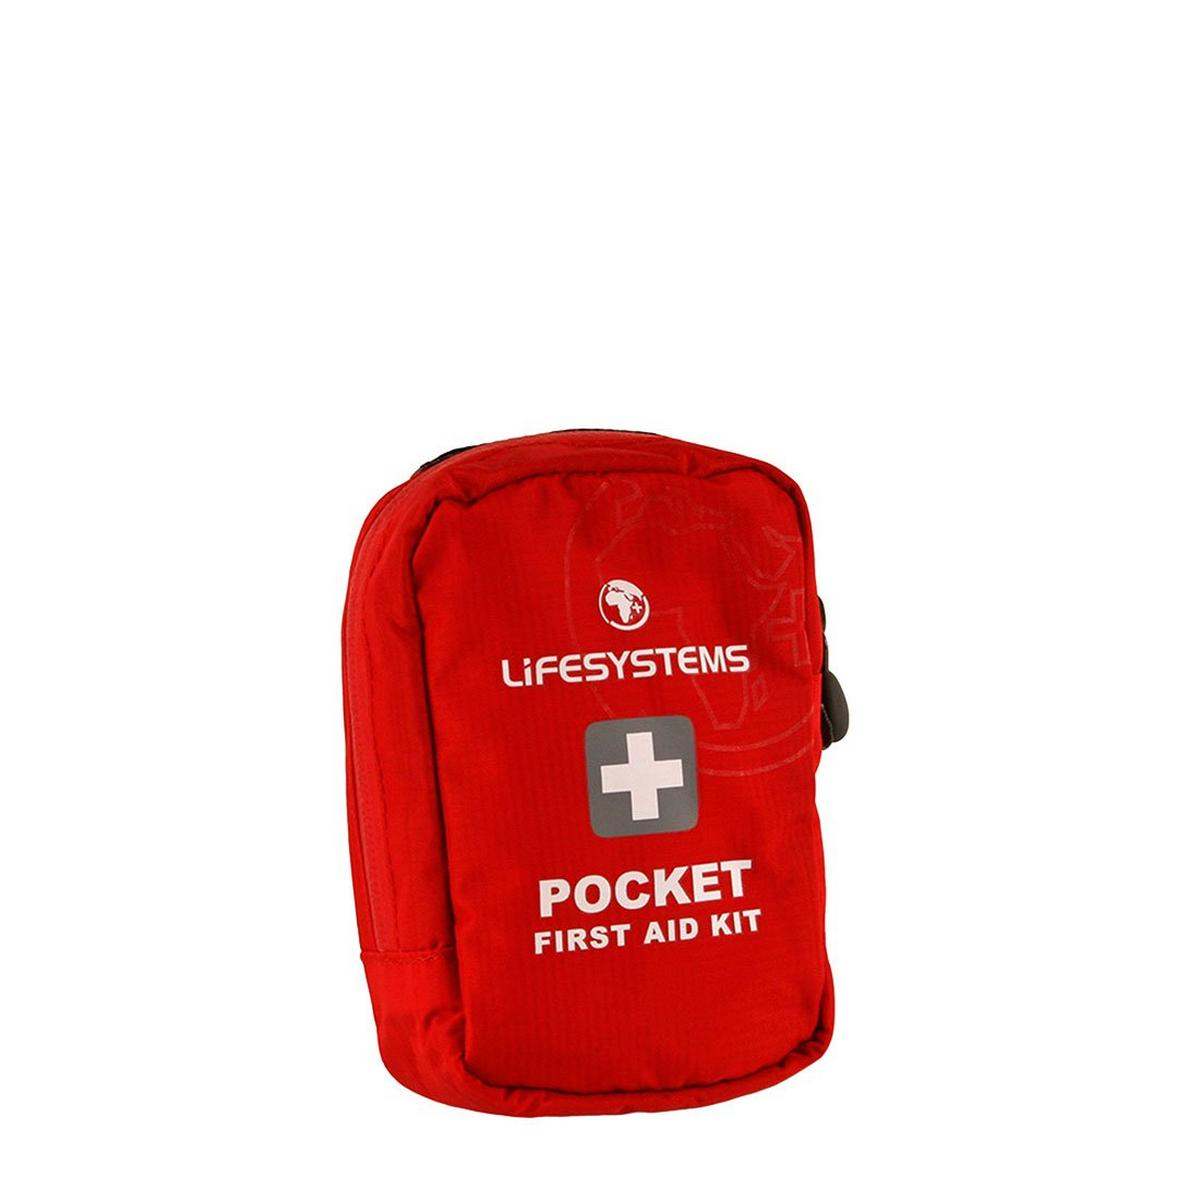 Lifesystems Pocket First Aid Pack